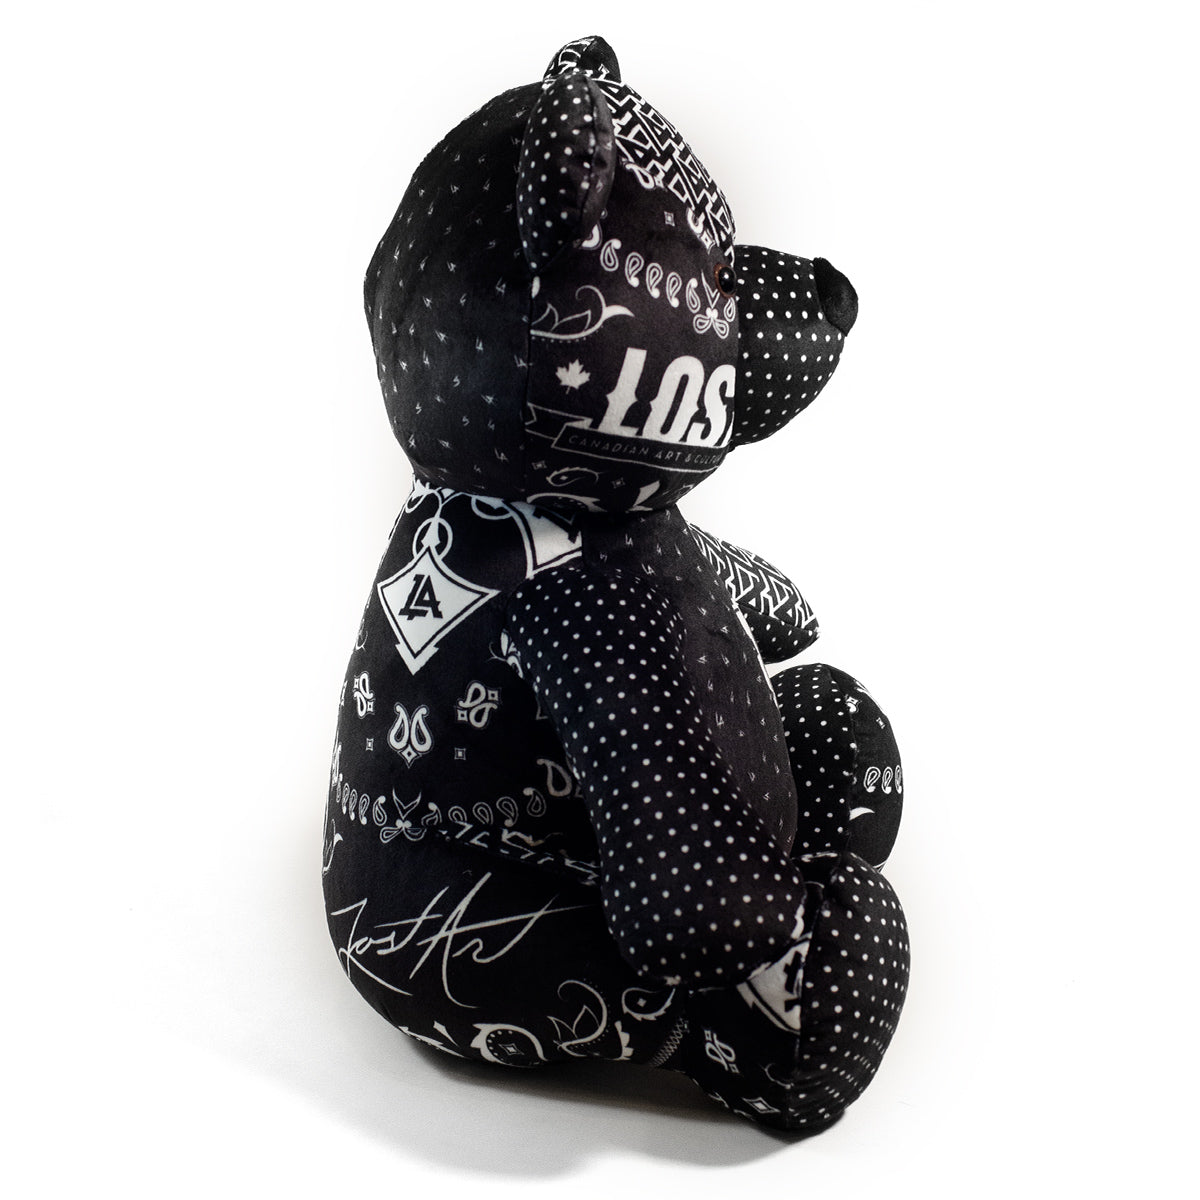 Lost Art Canada - black white patterned teddy bear right side view